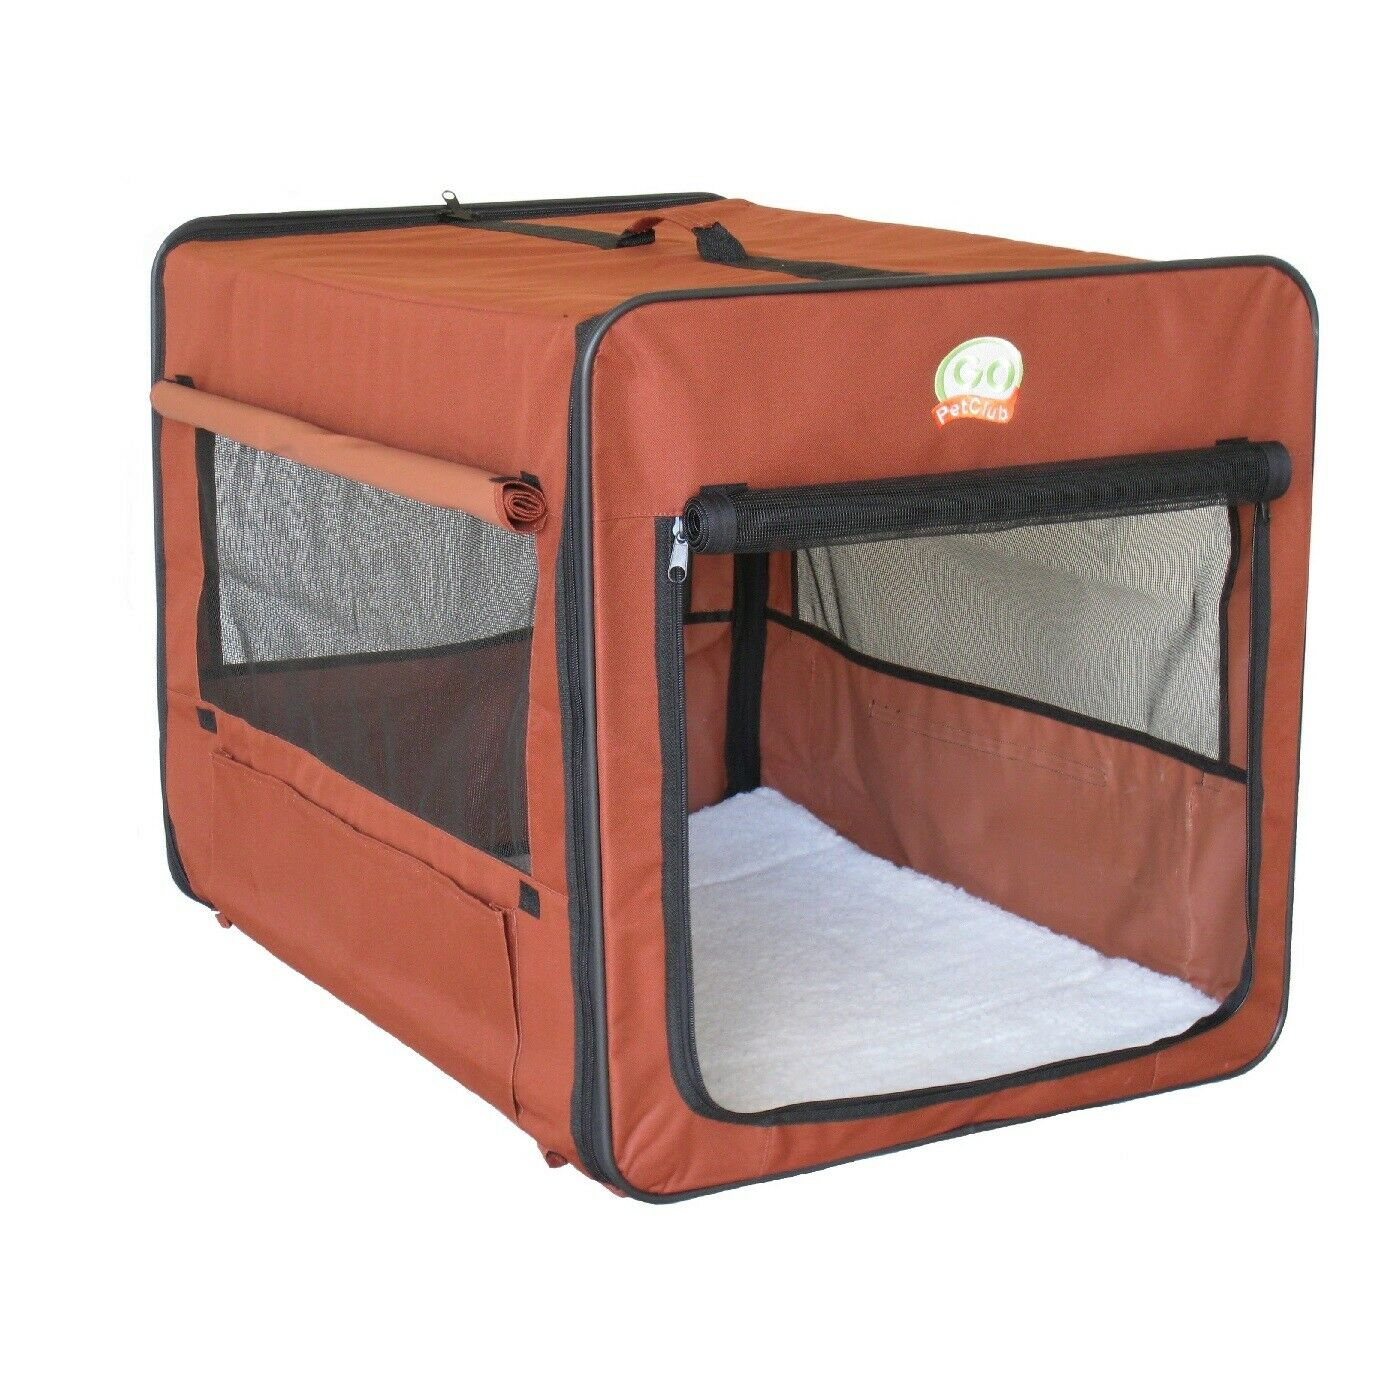 Soft Side Crate For Medium Dog Brown Portable Carrier Kennel Puppy Pet Cage GIFT